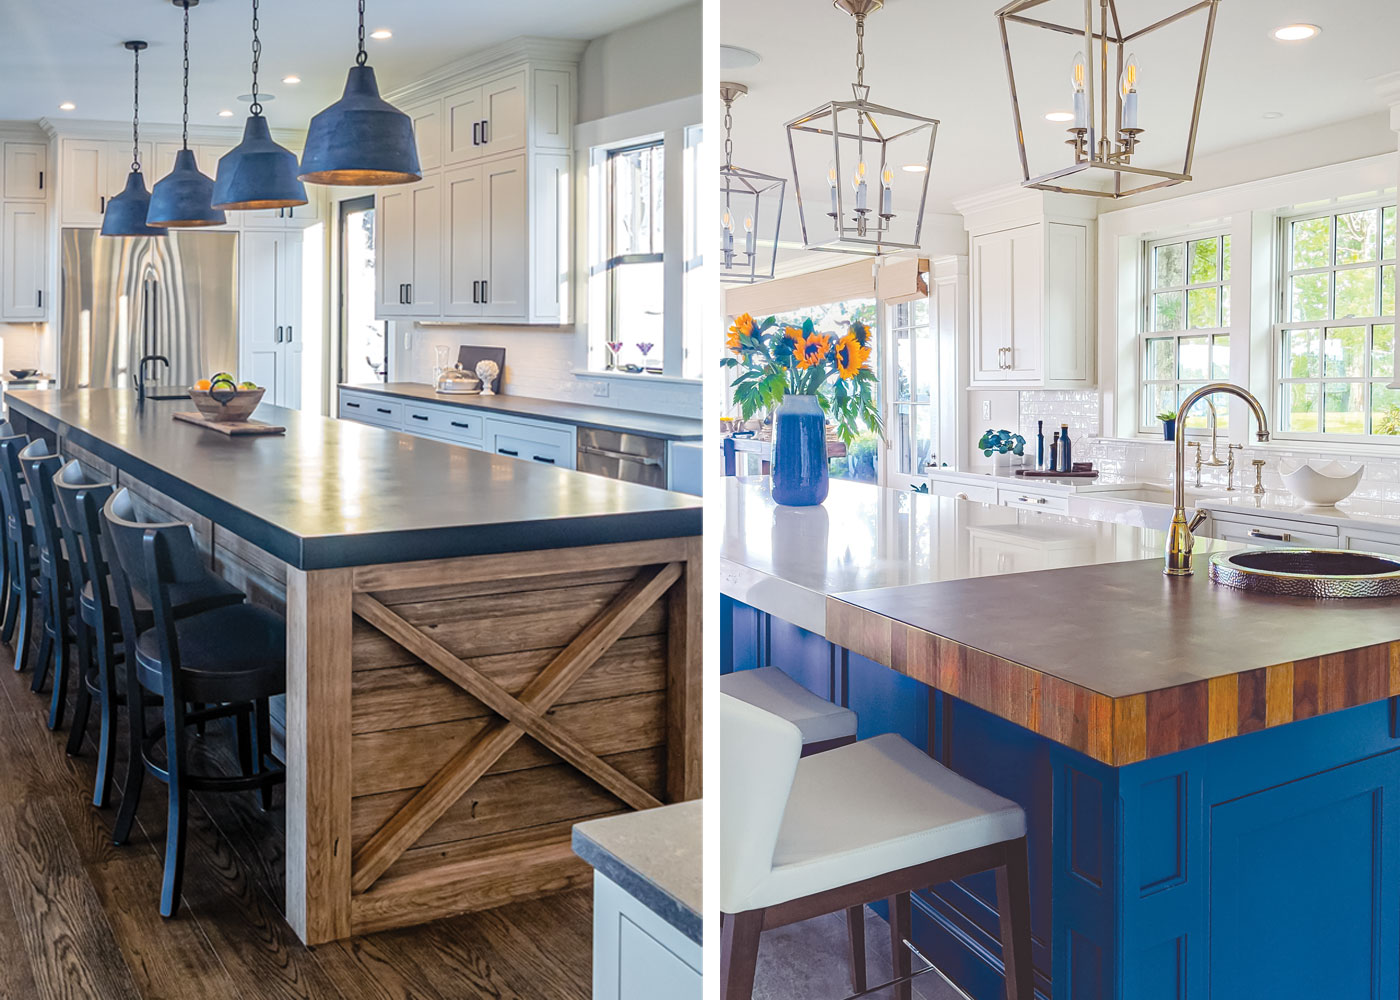 2 newly designed kitchens side by side with big islands and featuring a lot of blue and white in the cabinets and countertops